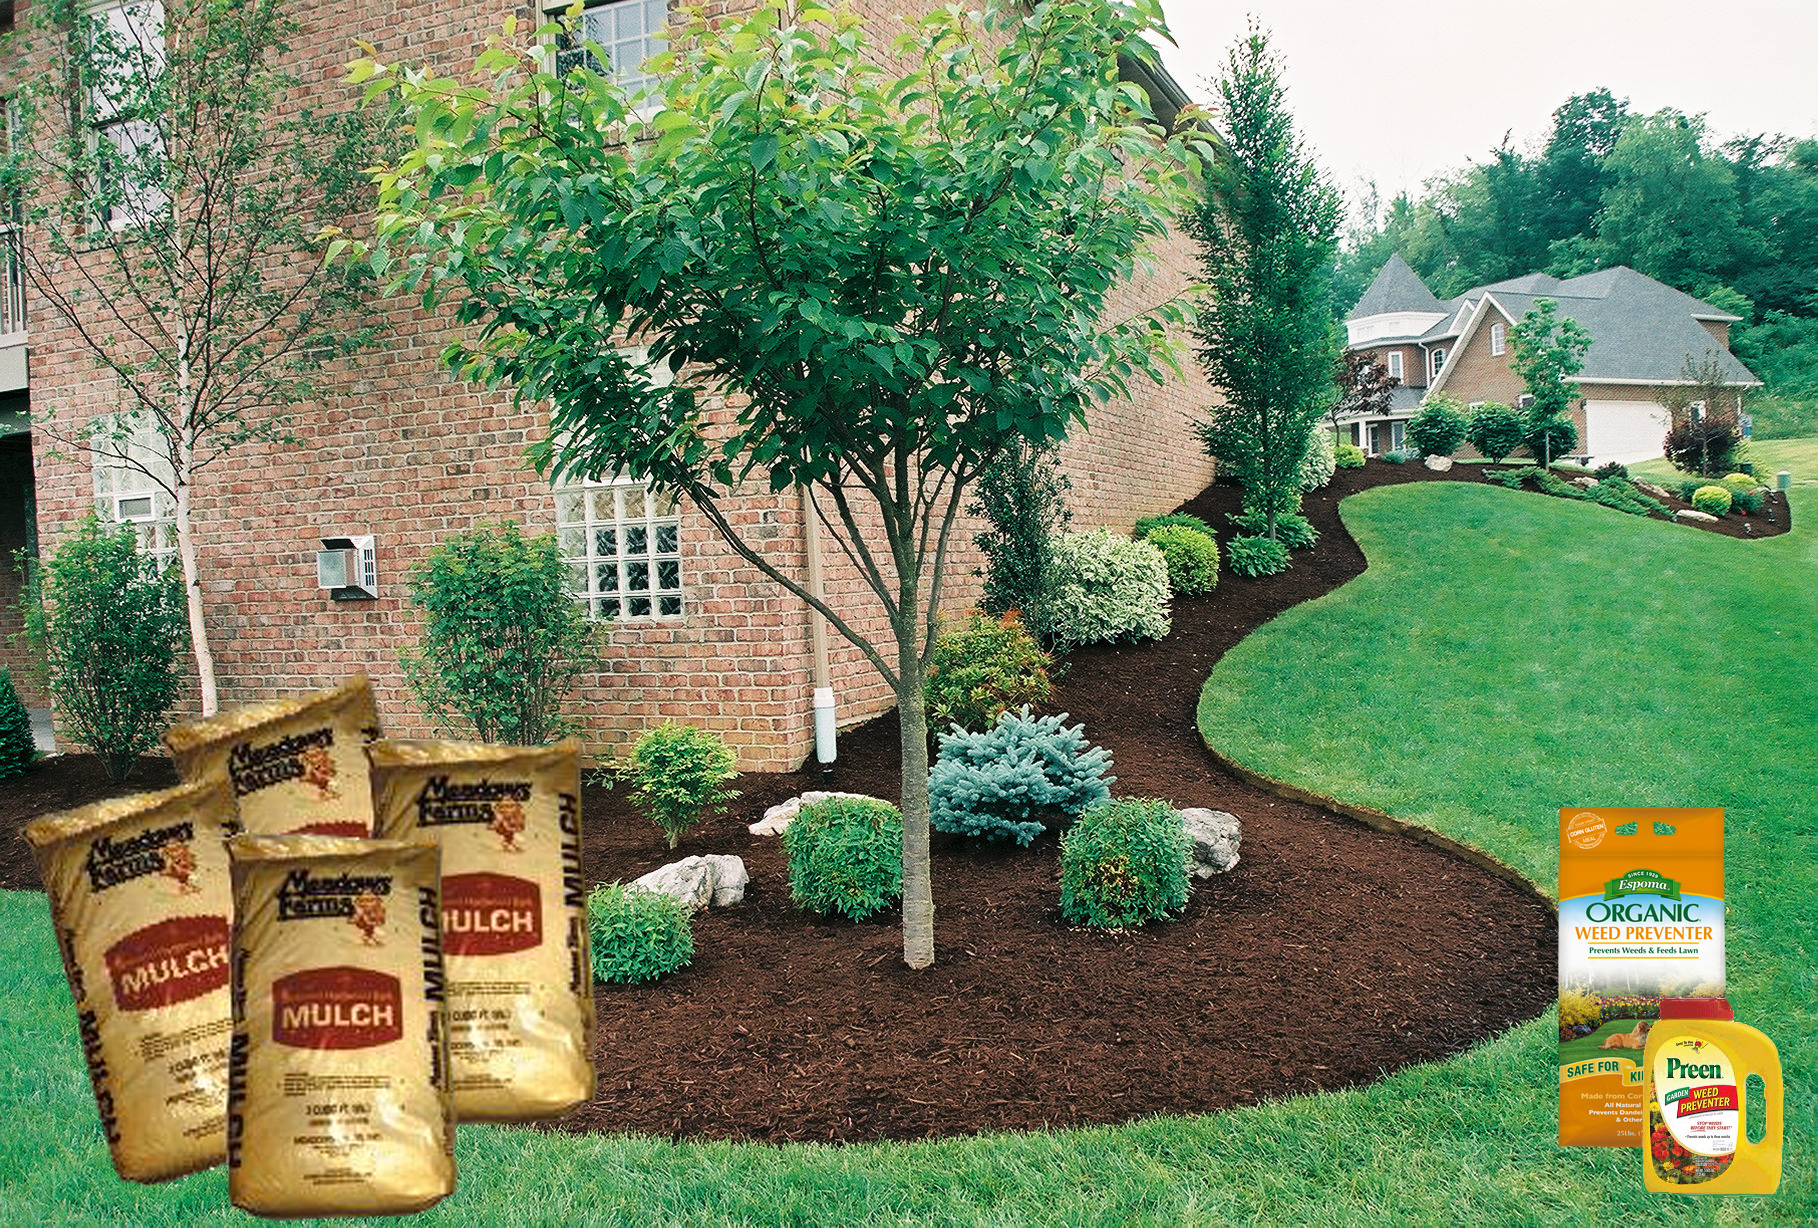 Special Plant Food Mulch Is Trouble Preen Weeds Preen Bulk Preen Weed Preventer Mulch Is Trouble Weeds Big Greenhouse Preen Weed Preventer houzz-03 Preen Weed Preventer